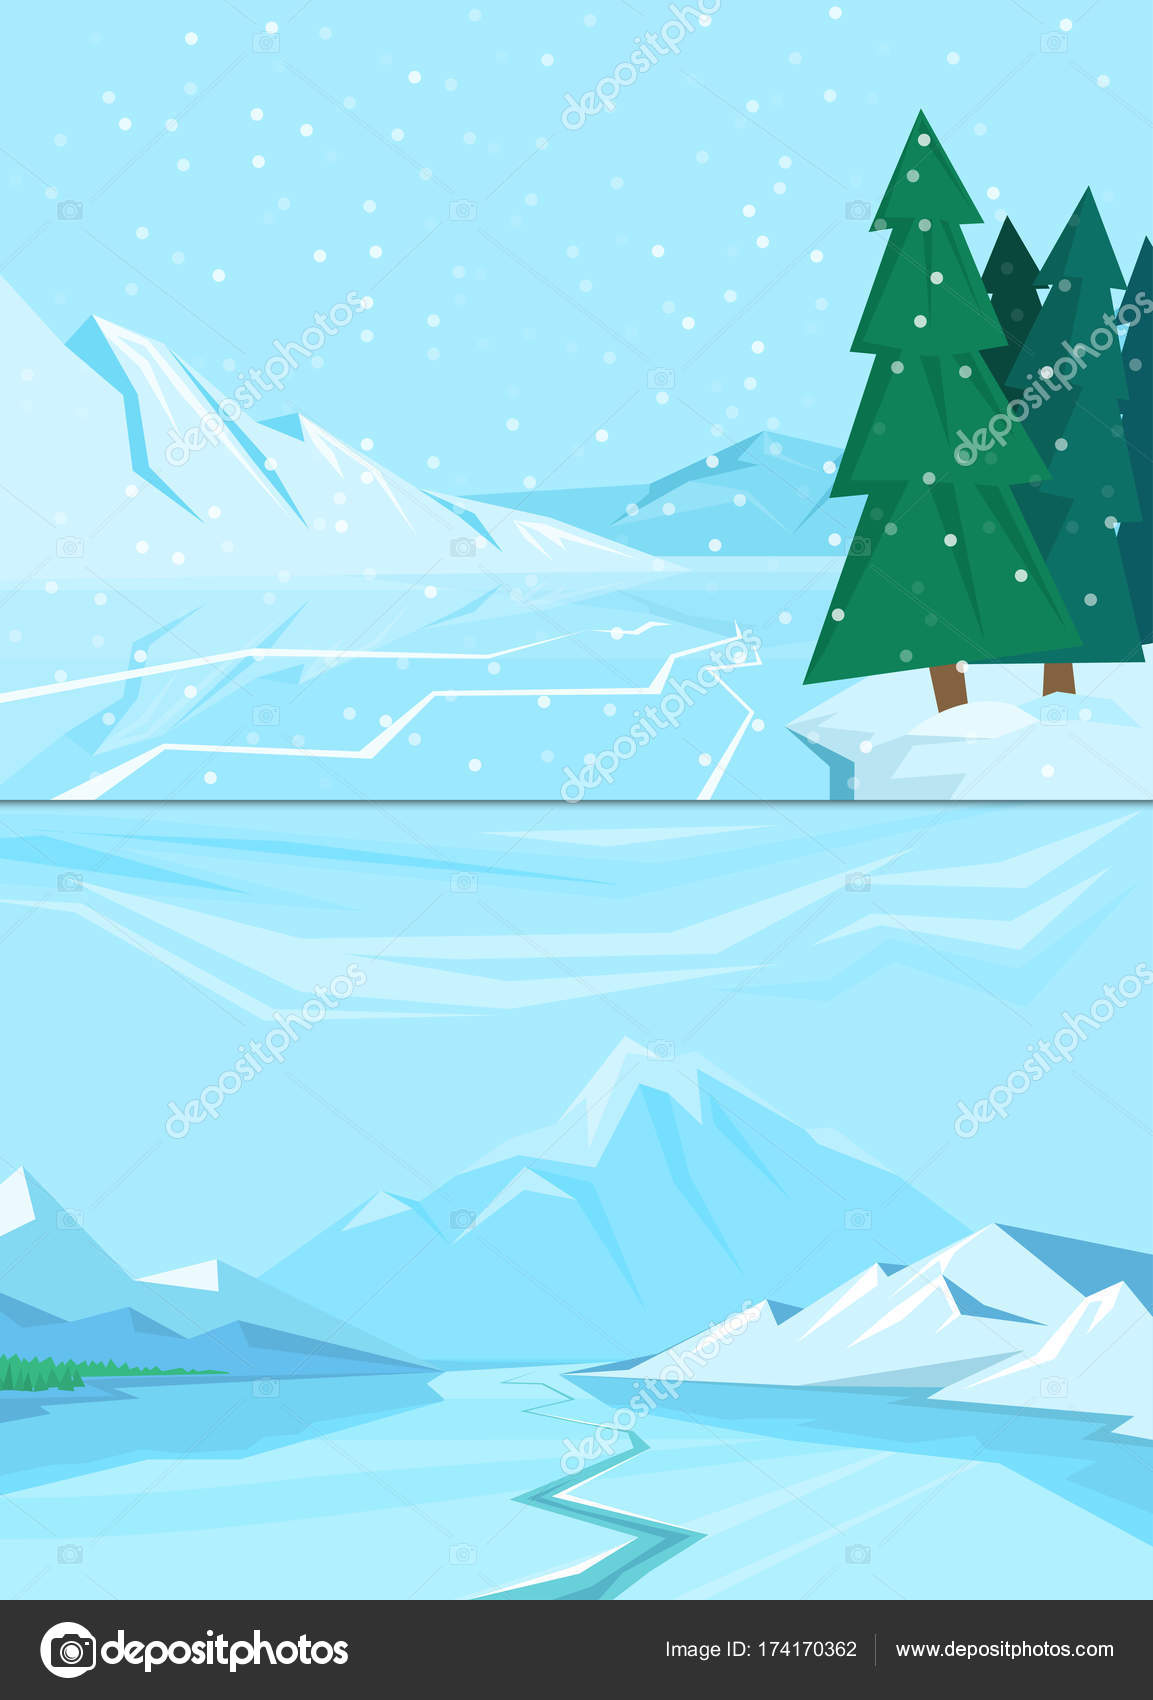 Winter Landscape With Christmas Tree Mountain Frozen Nature Wallpaper Beautiful Natural Vector Illustration Stock